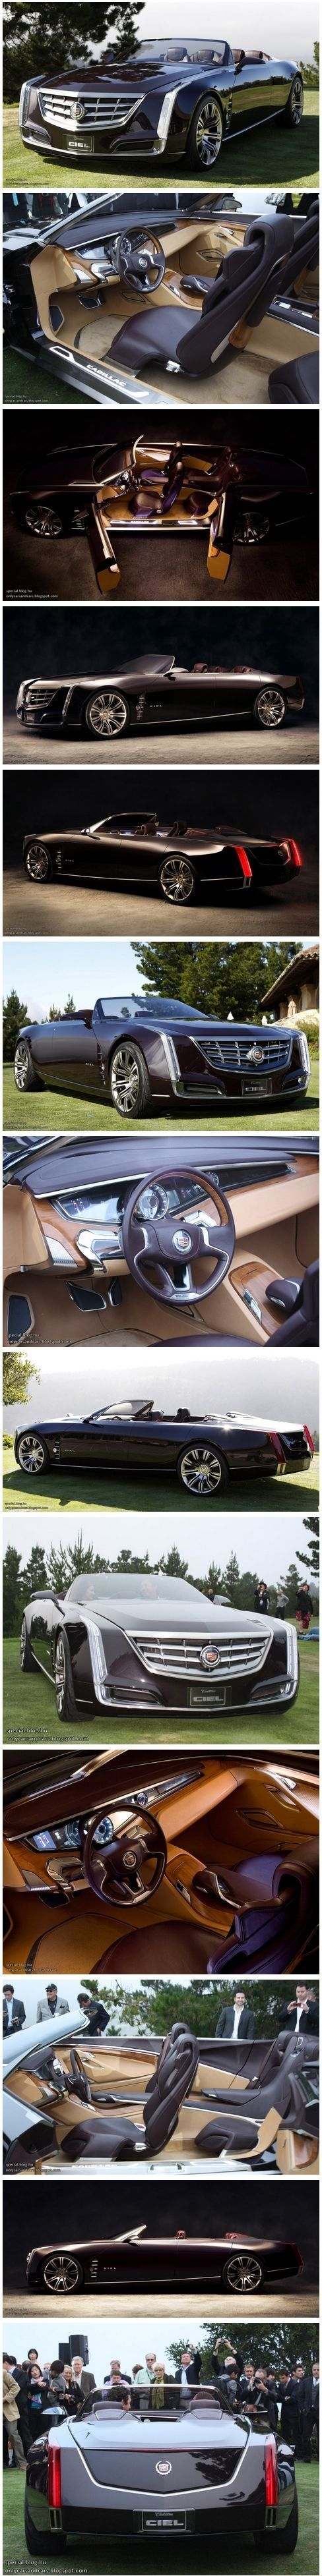 1830 best cars images on pinterest nice cars auto ford and cool cars cadillac ciel coupon code nicesup123 gets 25 off at leadingedgehealth cadillacclassiccars fandeluxe Image collections